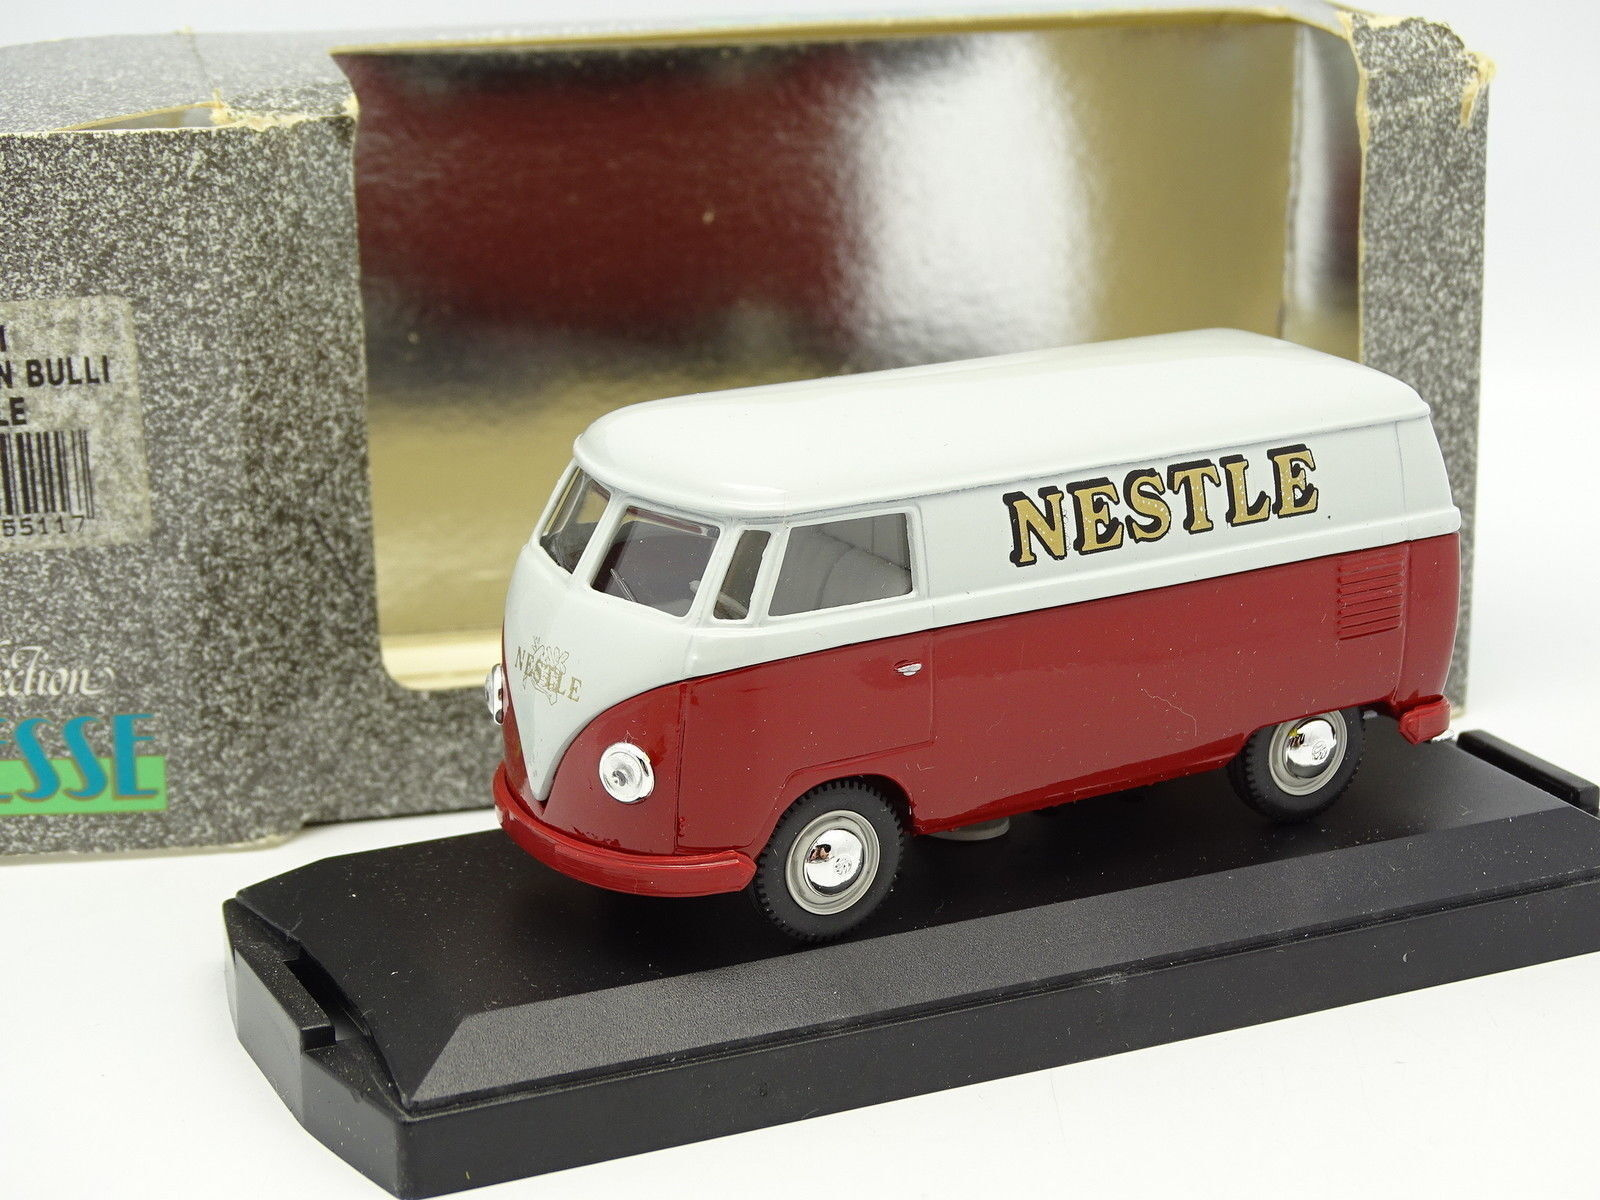 Vitesse City 1 43 - VW Bulli T1 Nestle